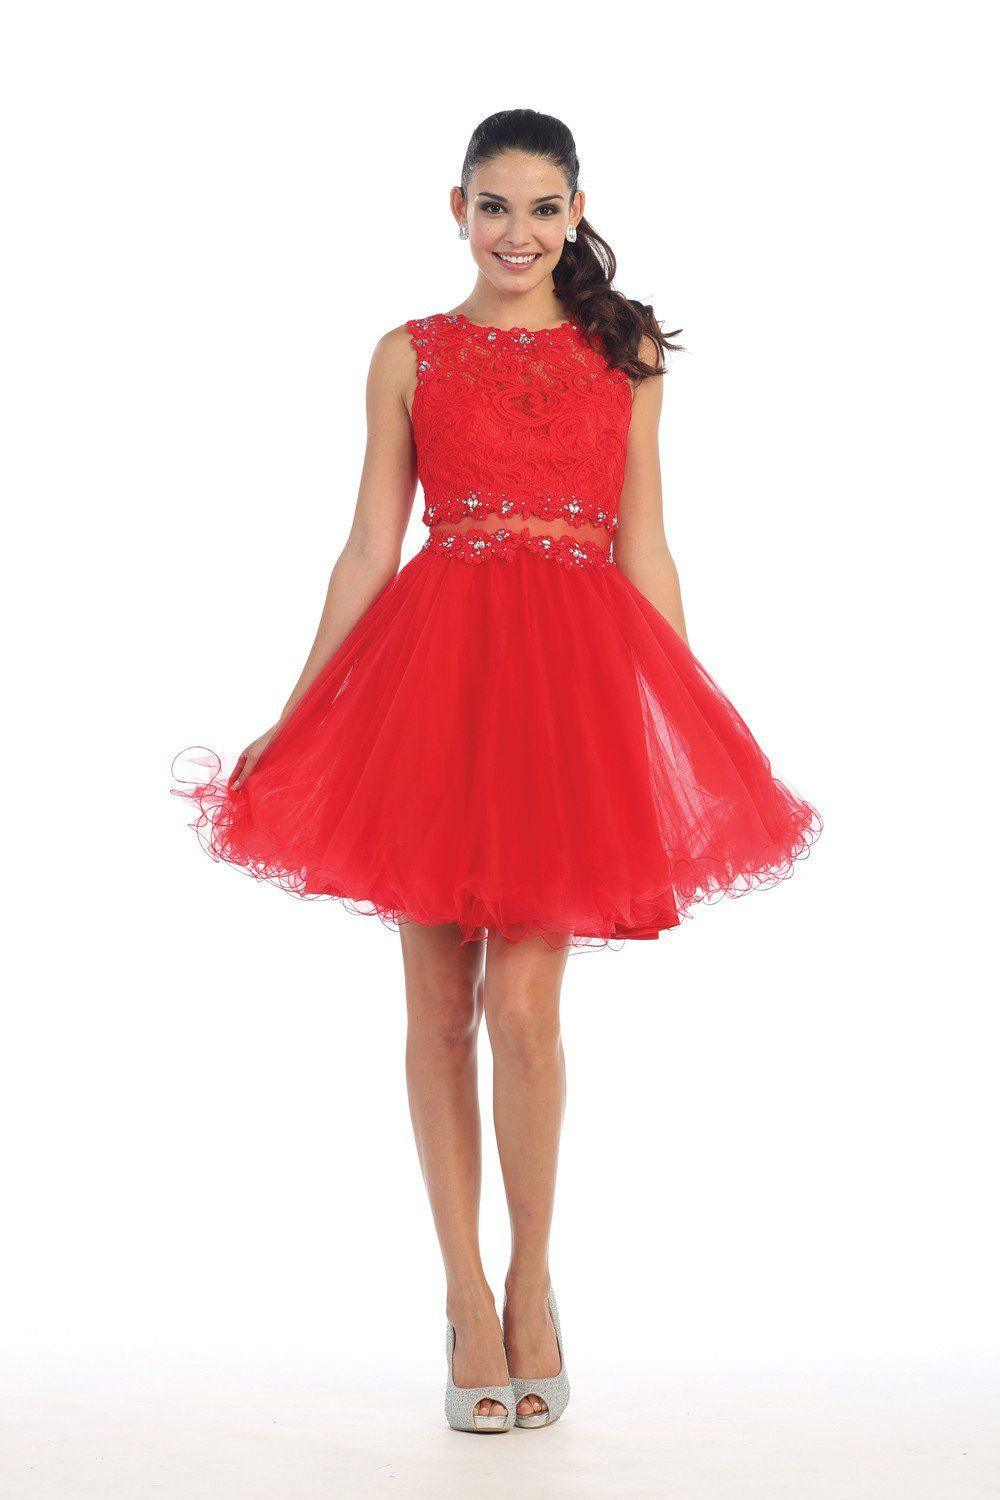 Short Mock 2 Piece Prom Dress Homecoming Formal Plus Size ...